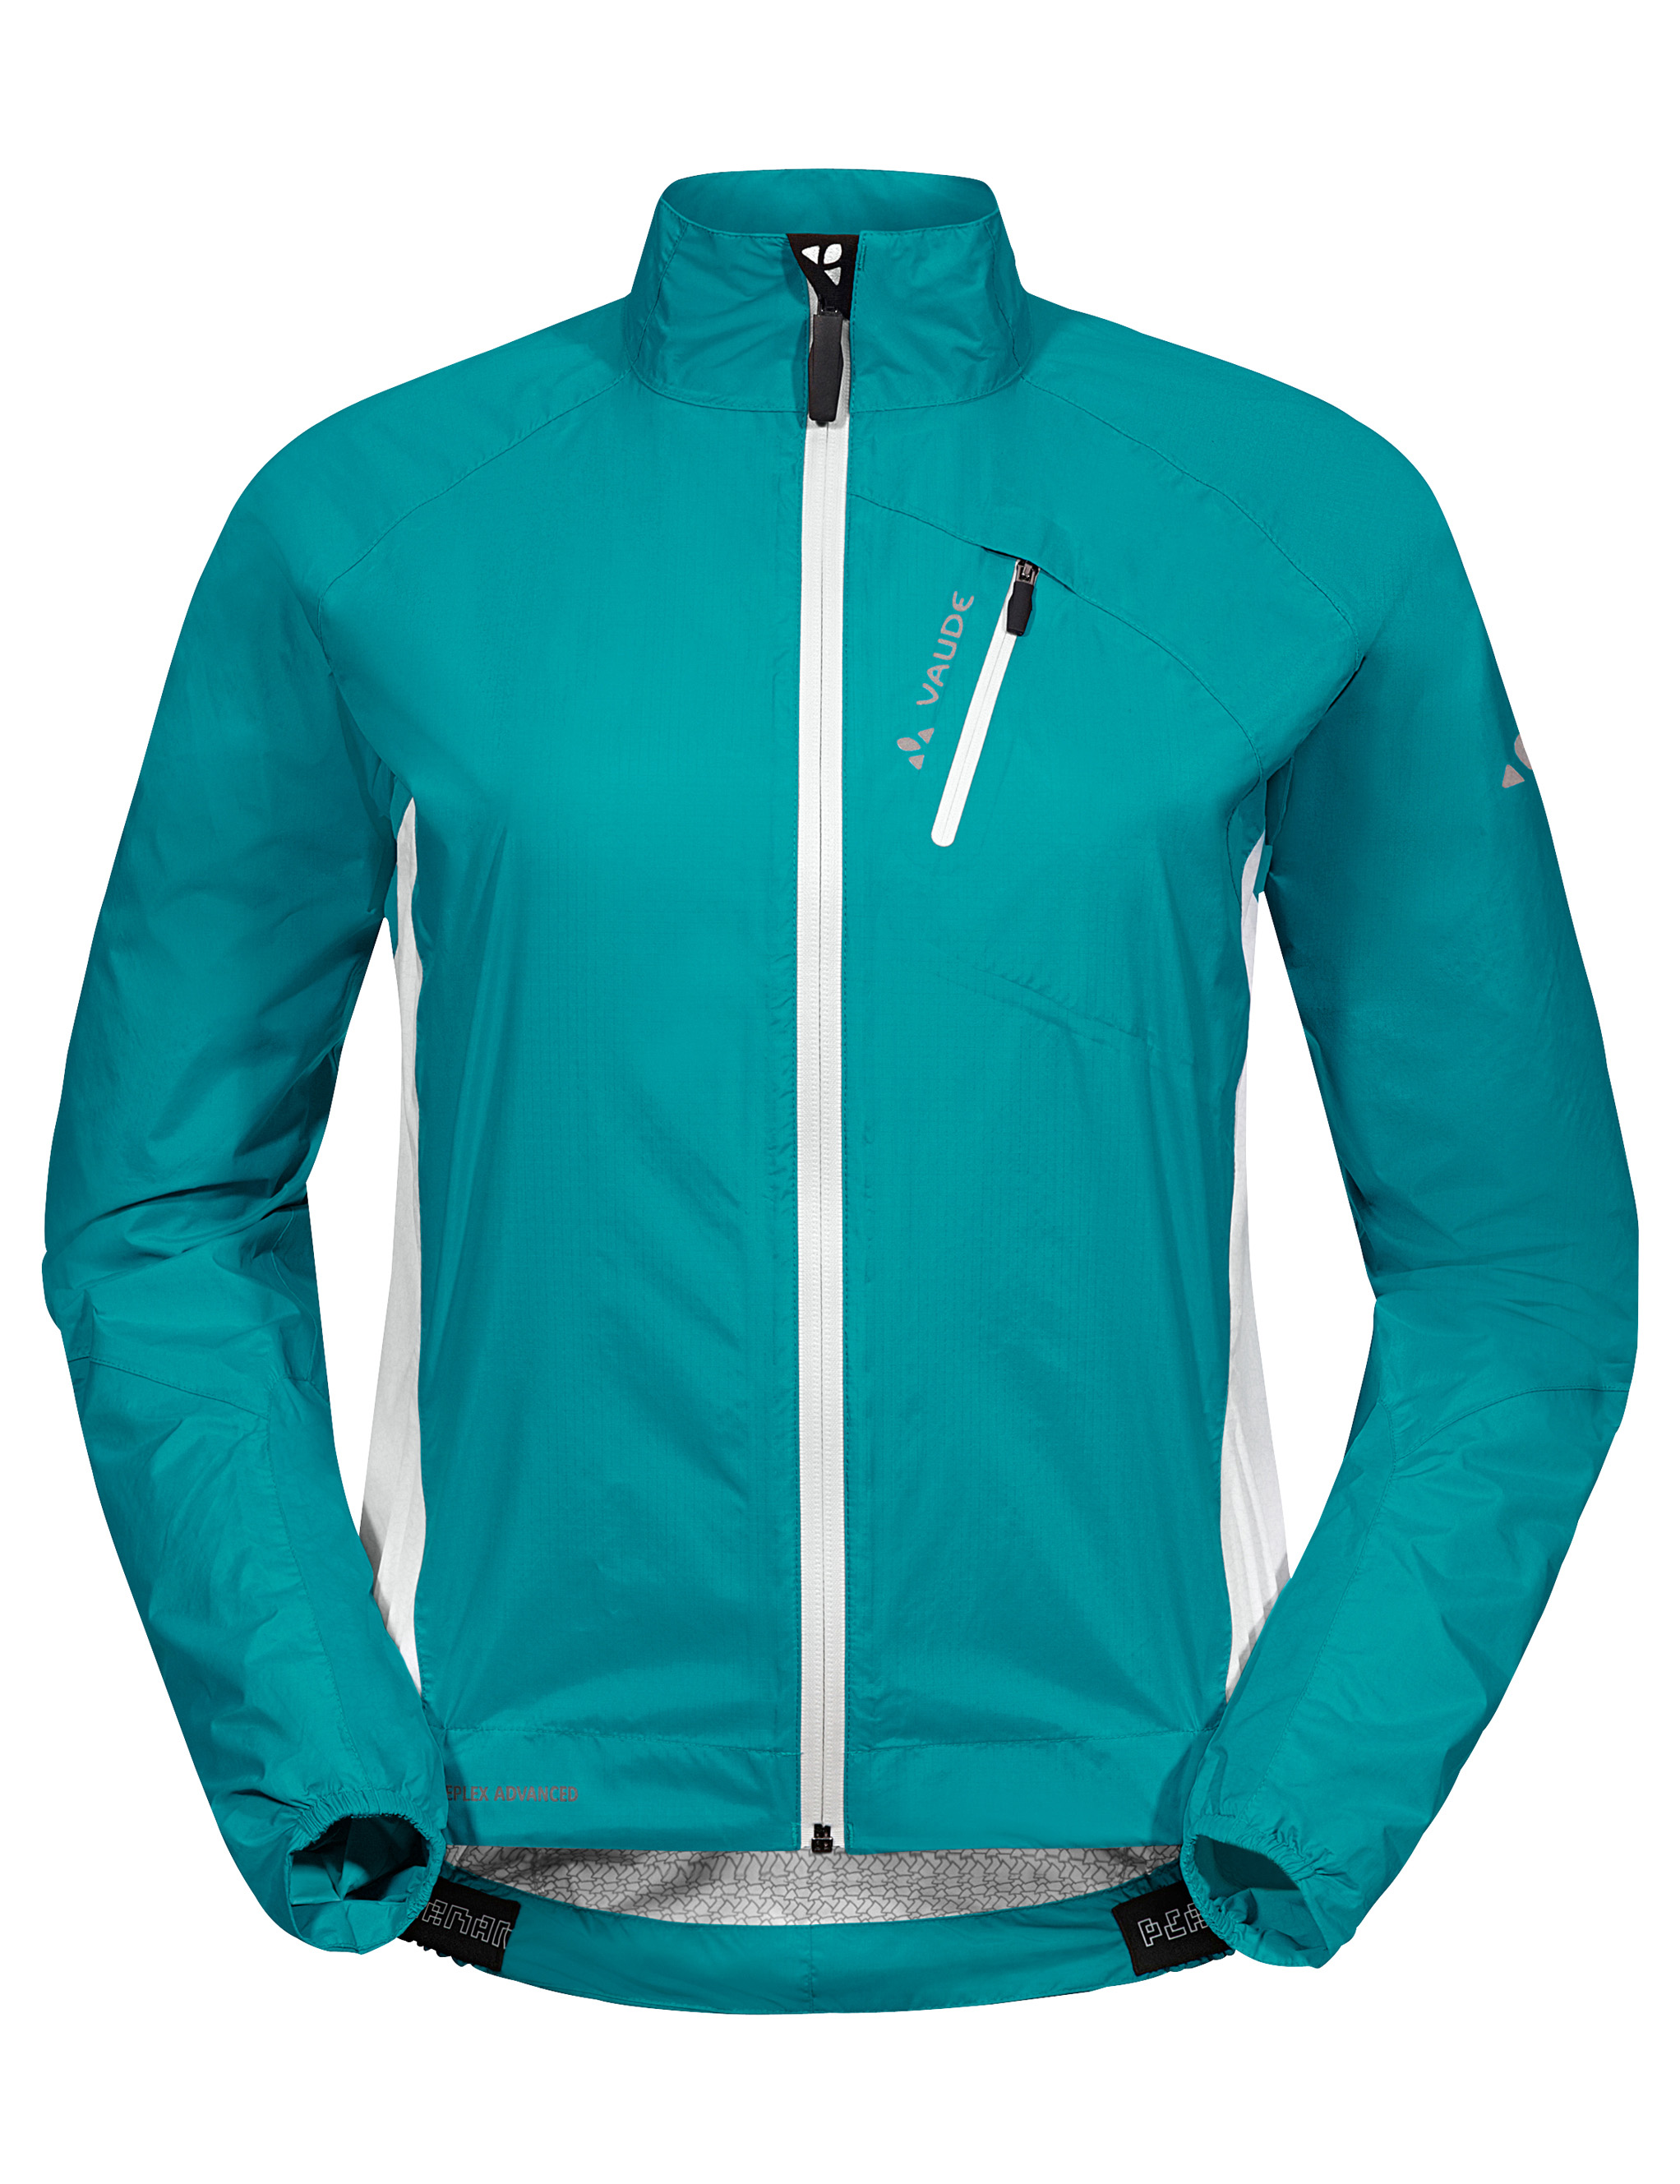 VAUDE Women´s Spray Jacket IV reef Größe 36 - schneider-sports